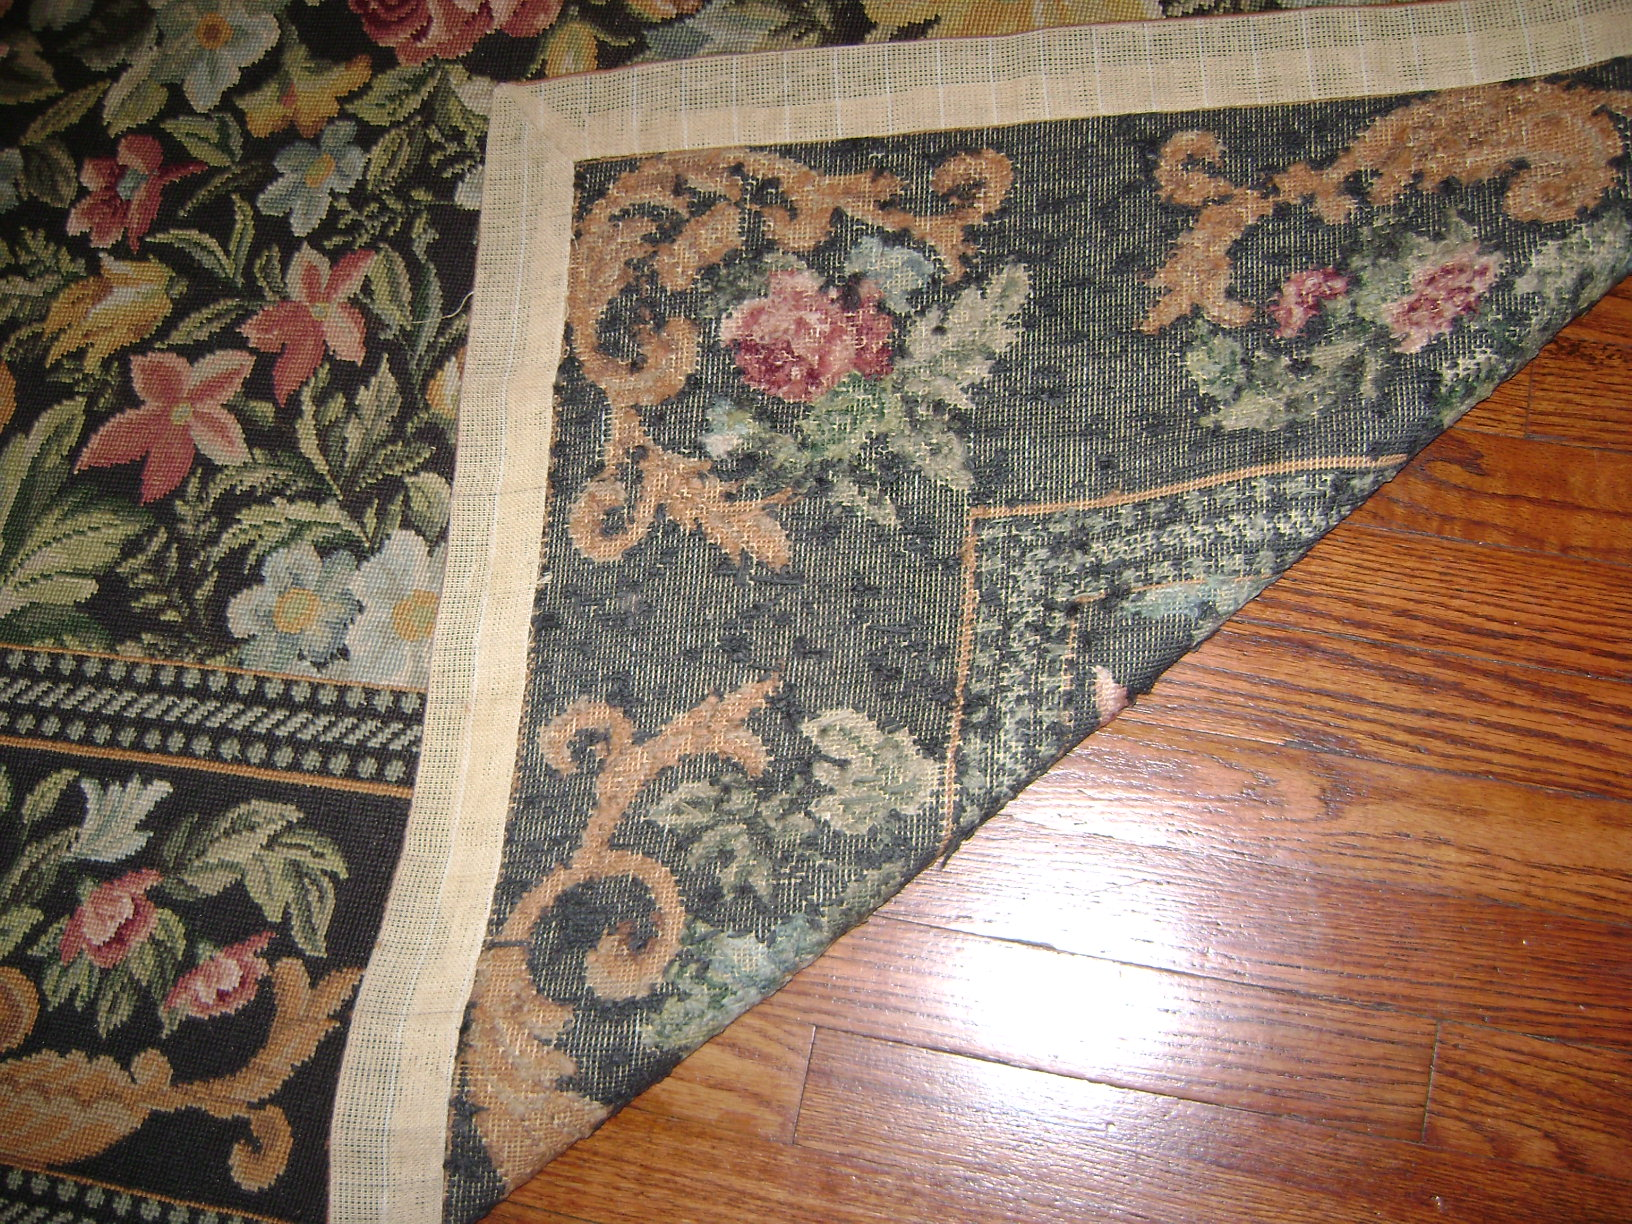 Cynthia's floral needlepoint rug 2